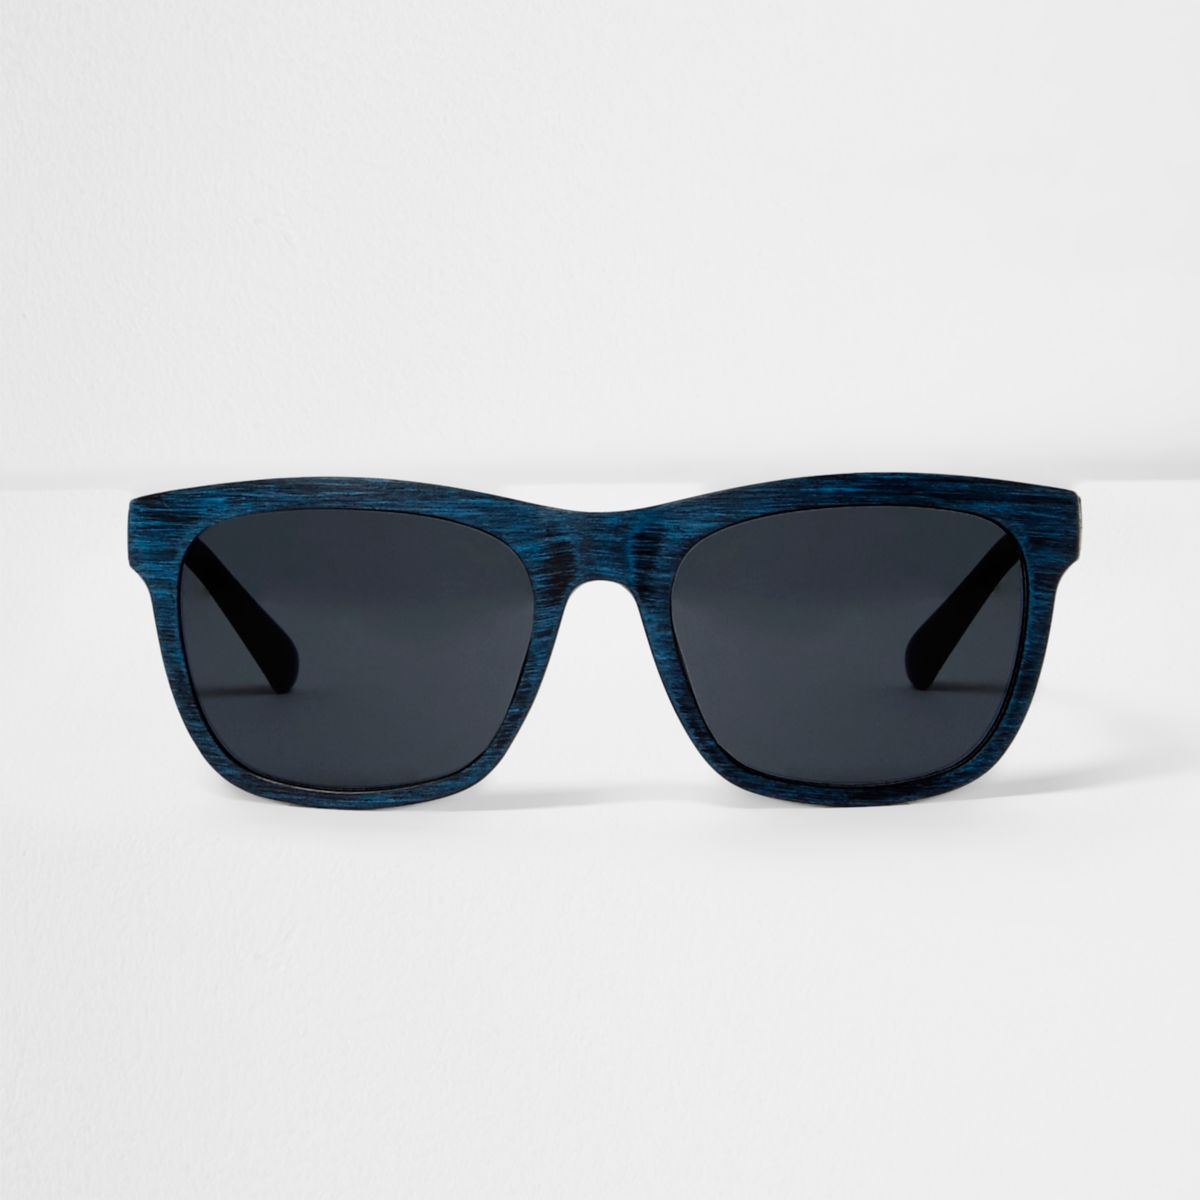 Blue wood effect retro sunglases